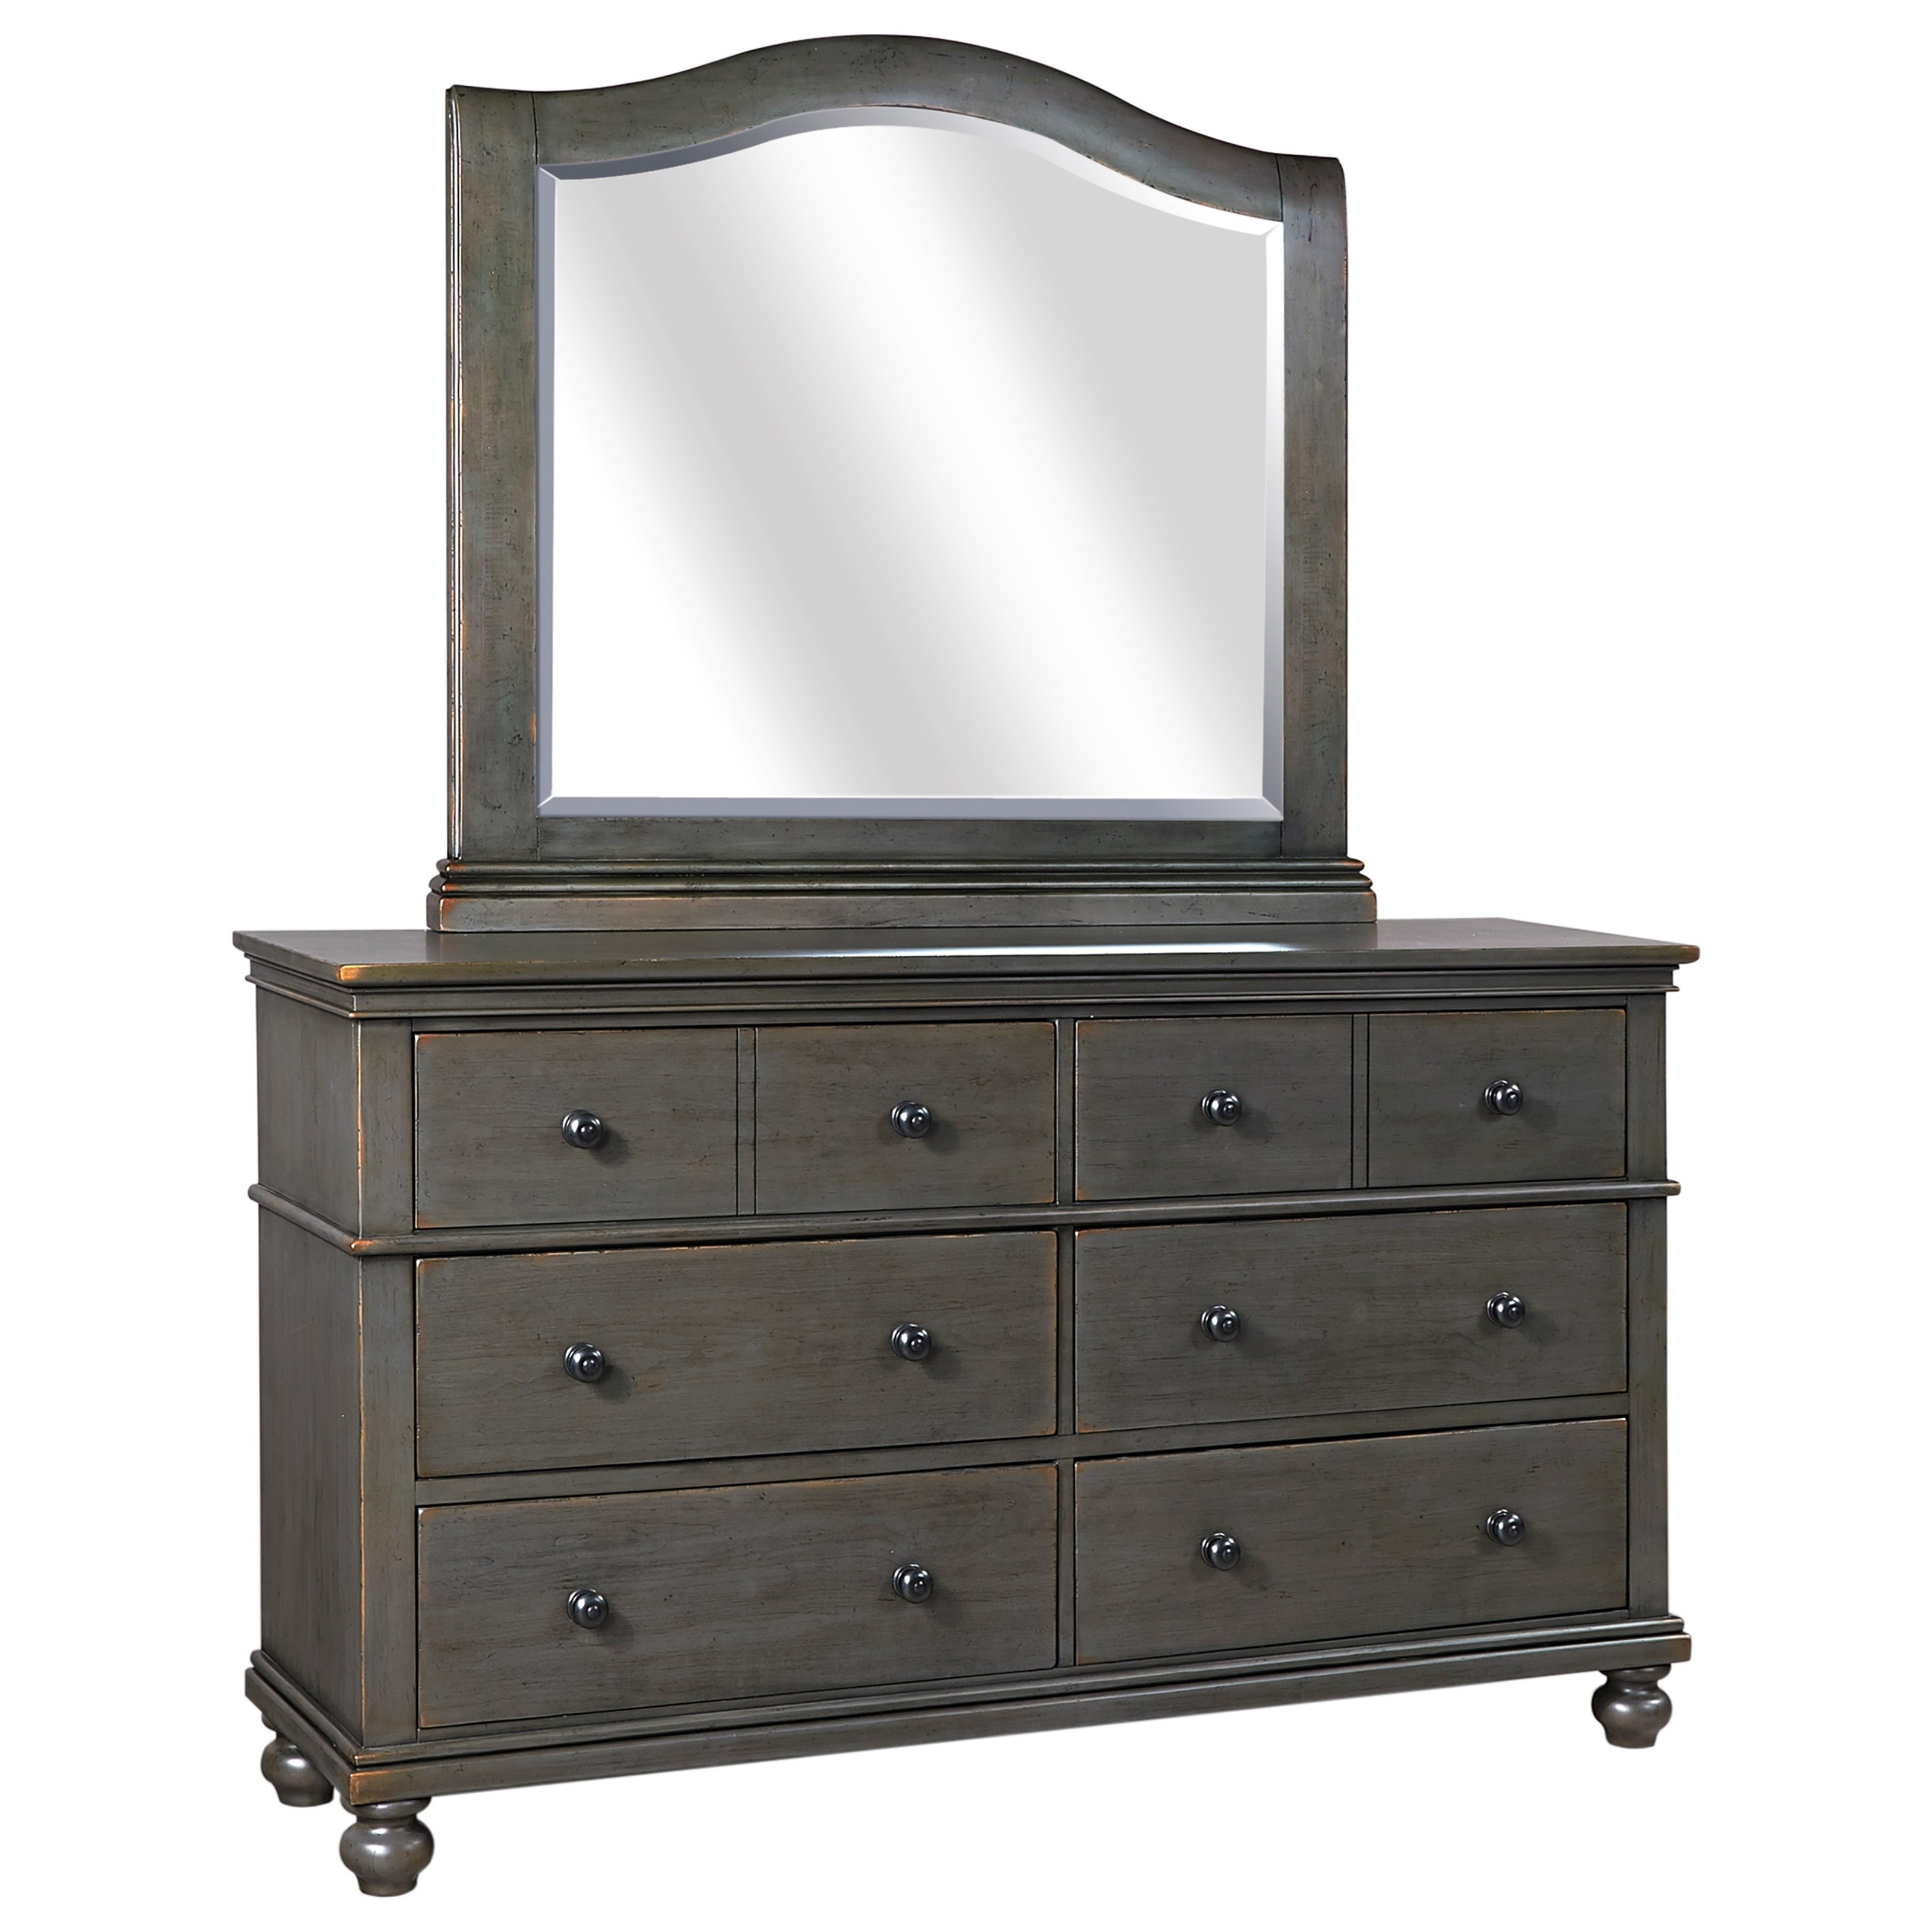 Oxford Dresser with Mirror by Aspenhome at Walker's Furniture